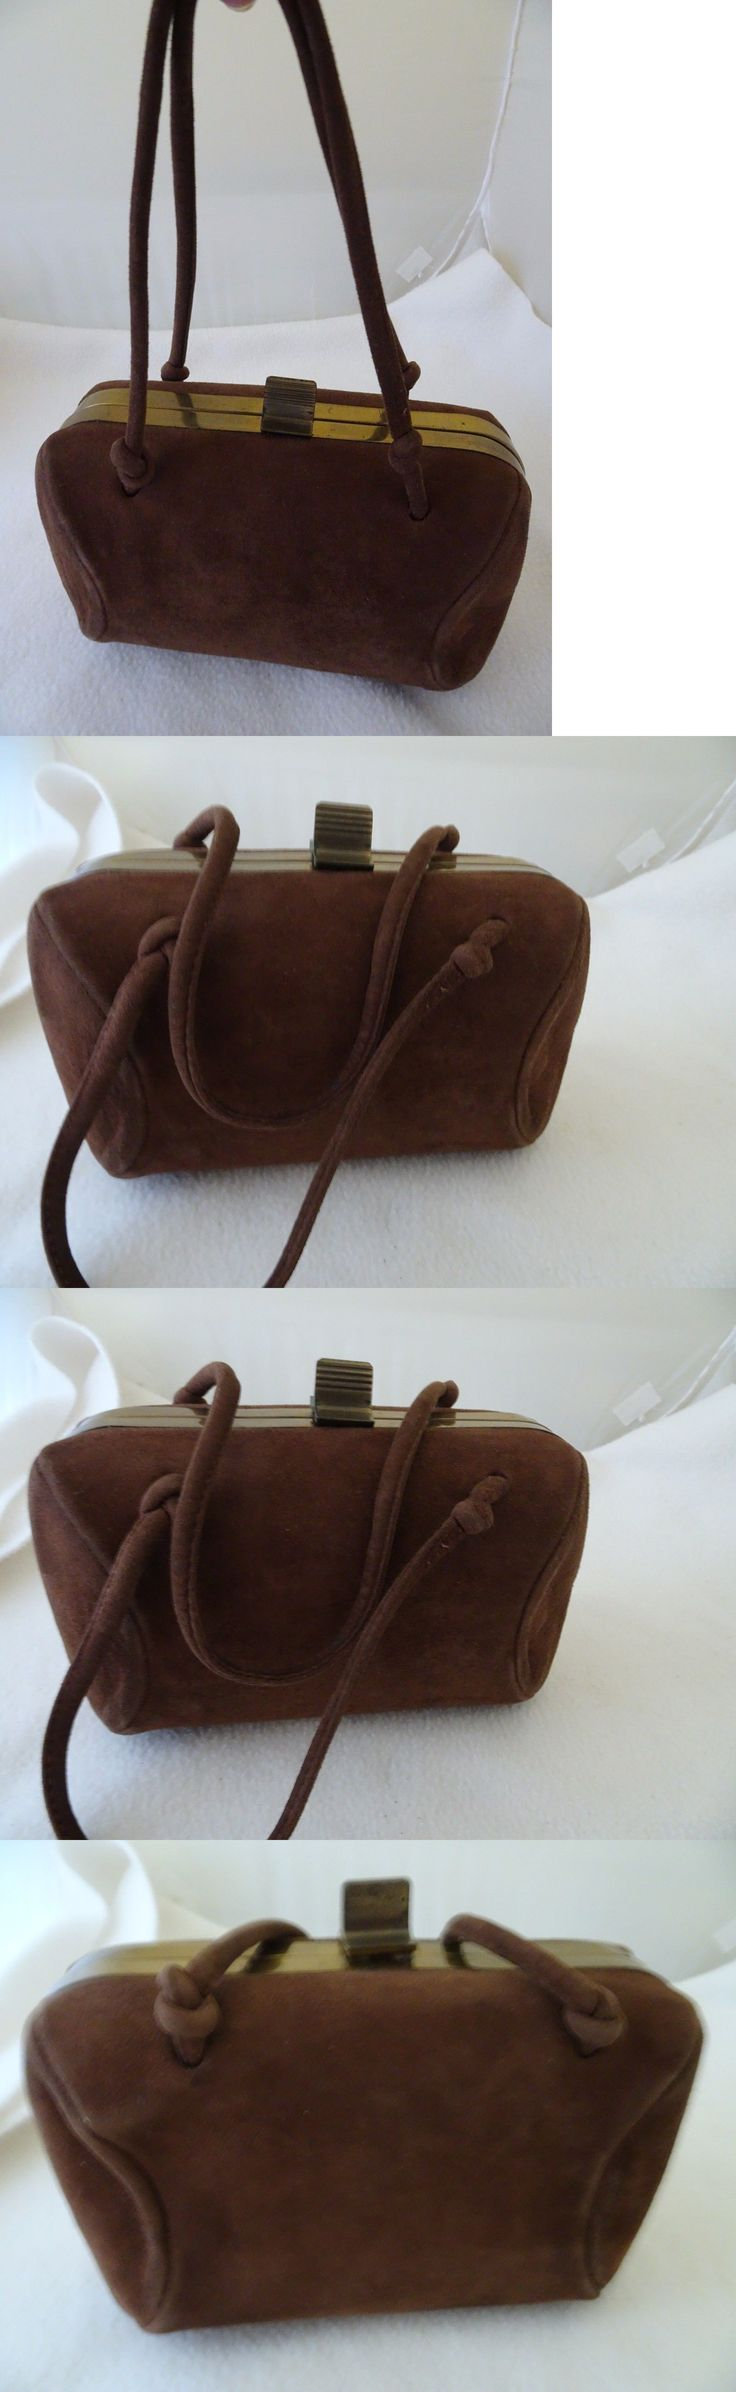 Bridal Handbags And Bags: Brown Suede Hand Bag/Purse-1946 Wedding Attire-Vtg-.Clean And Usable-Boxy And Beau -> BUY IT NOW ONLY: $20.0 on eBay!